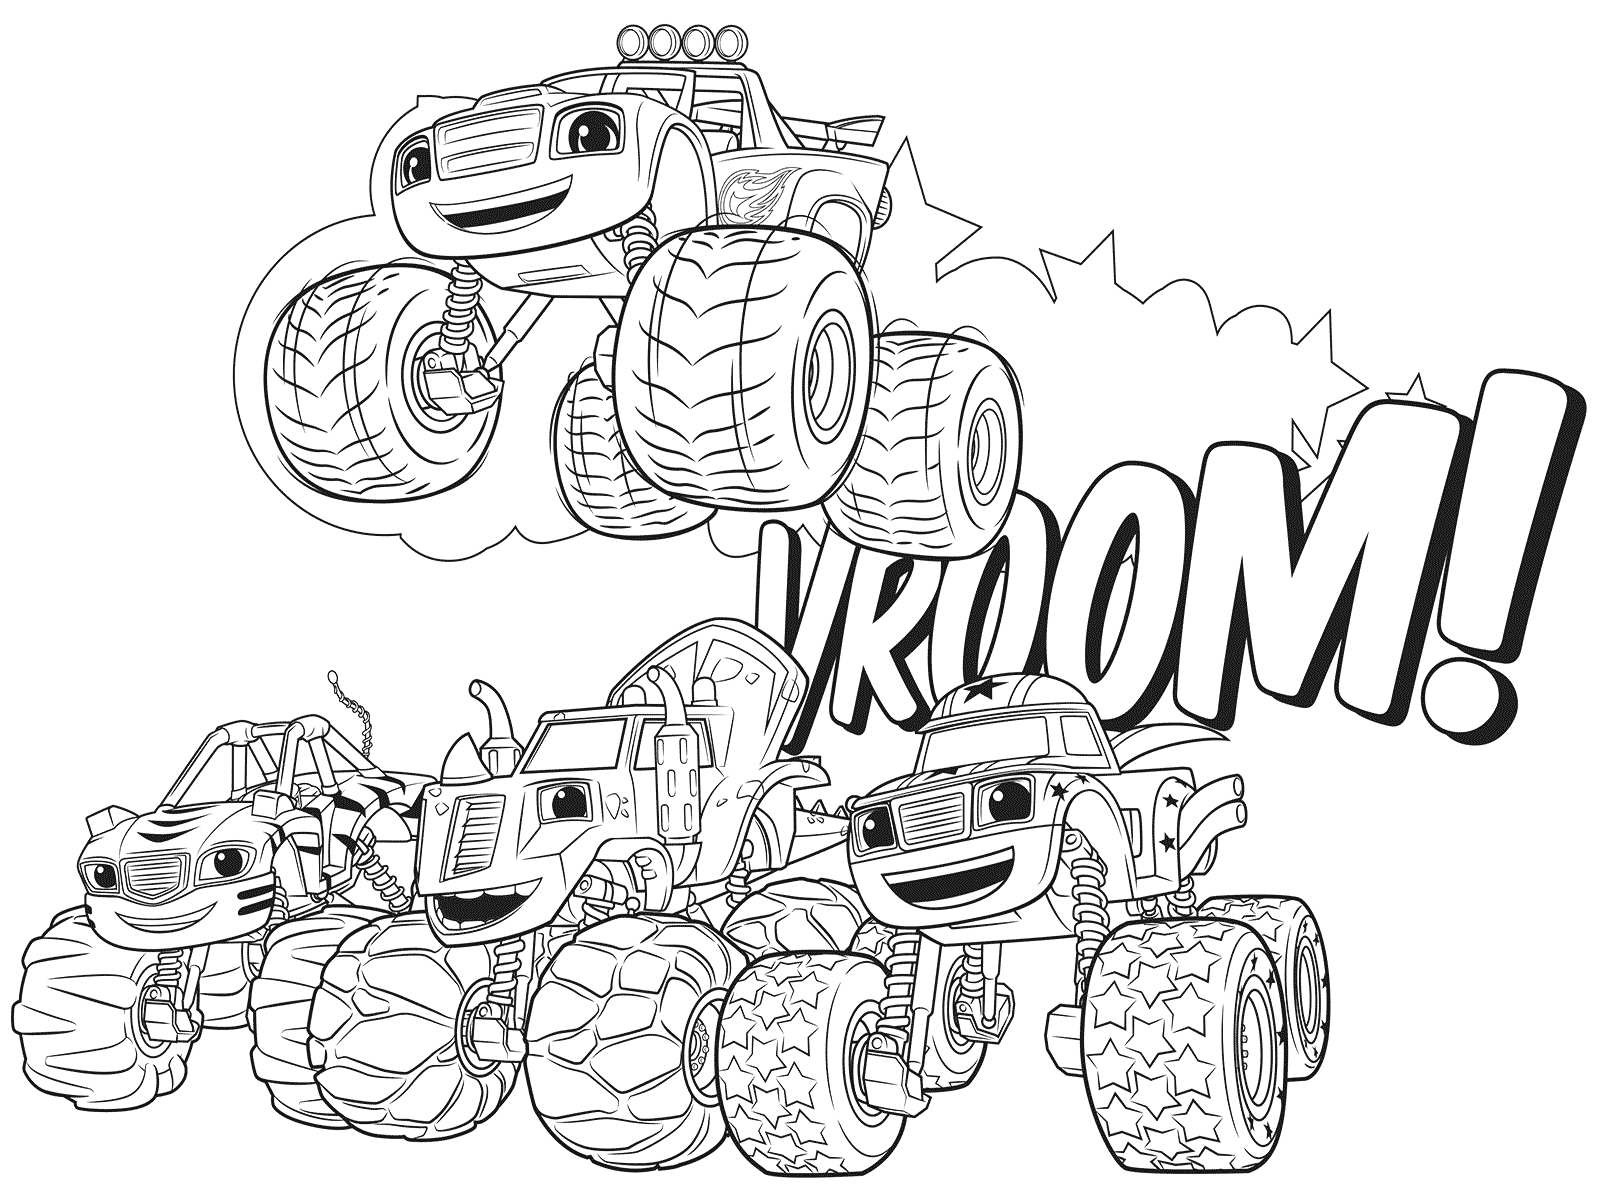 Coloring Pages Of Blaze and the Monster Machines Blaze and the Monster Machines Coloring Pages Best